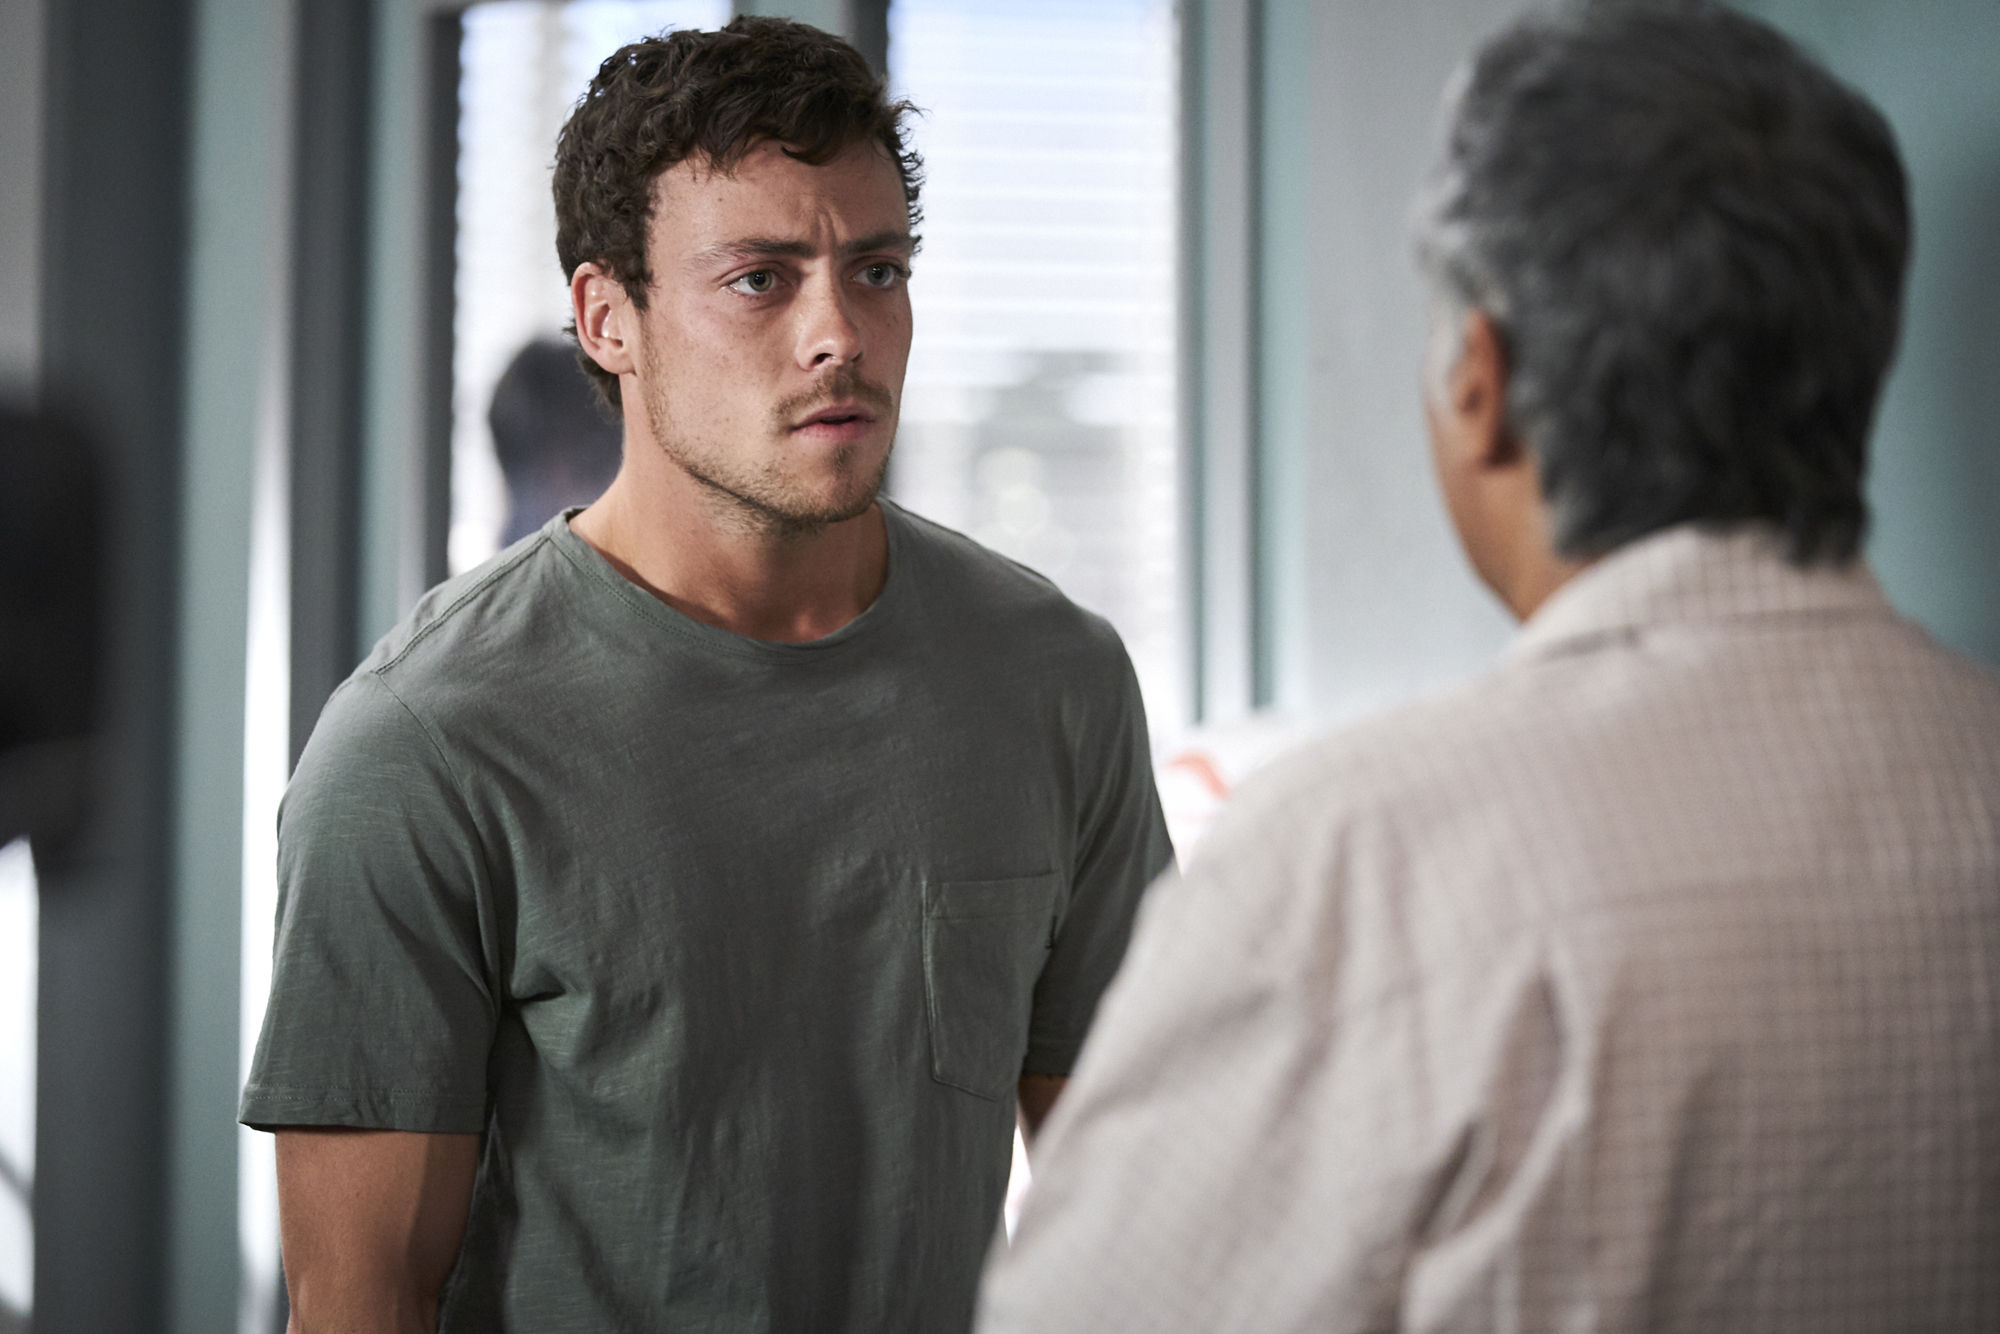 Home and Away spoilers: Dean makes bombshell murder confession